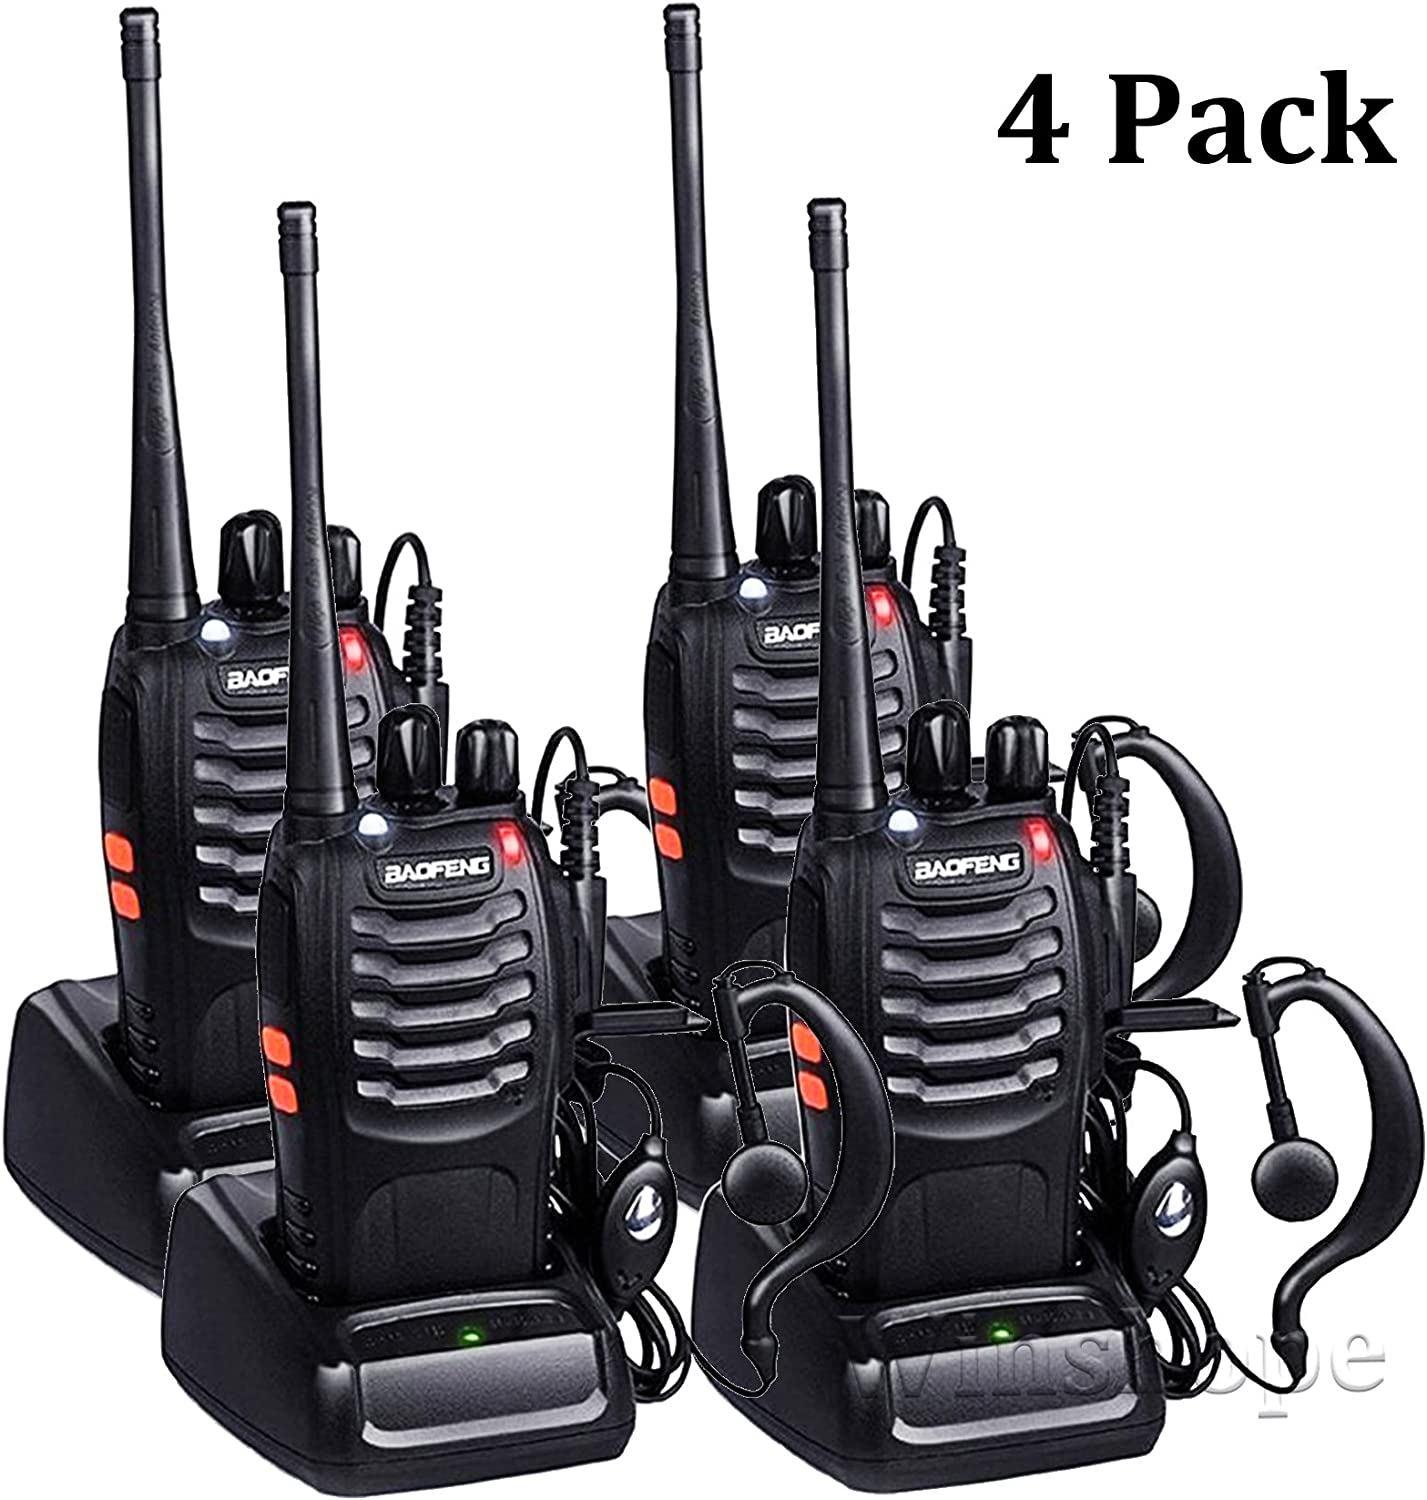 Walkie Talkies Radios Baofeng Radio BF-888s Long Range with Antenna Earpiece Mic Rechargeable 2 Way Radio UHF Comunicacion Walkie Talkie with Headsets Pack of 4